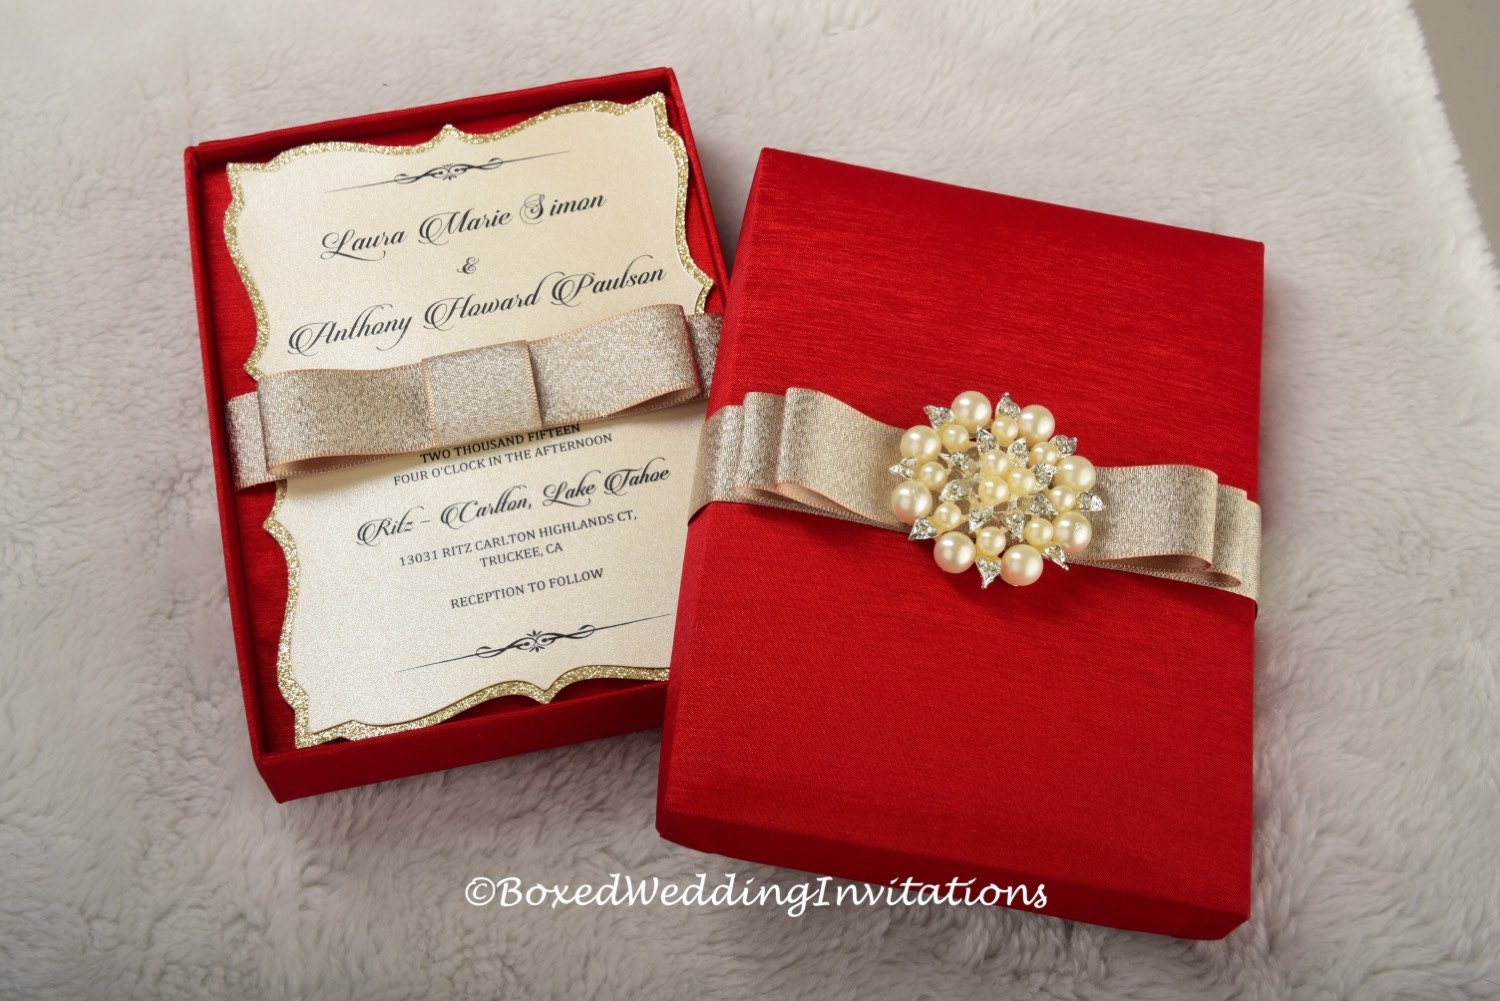 Expensive Wedding Invitation: Luxury Wedding Invitation/Couture Wedding Invitation/Wedding